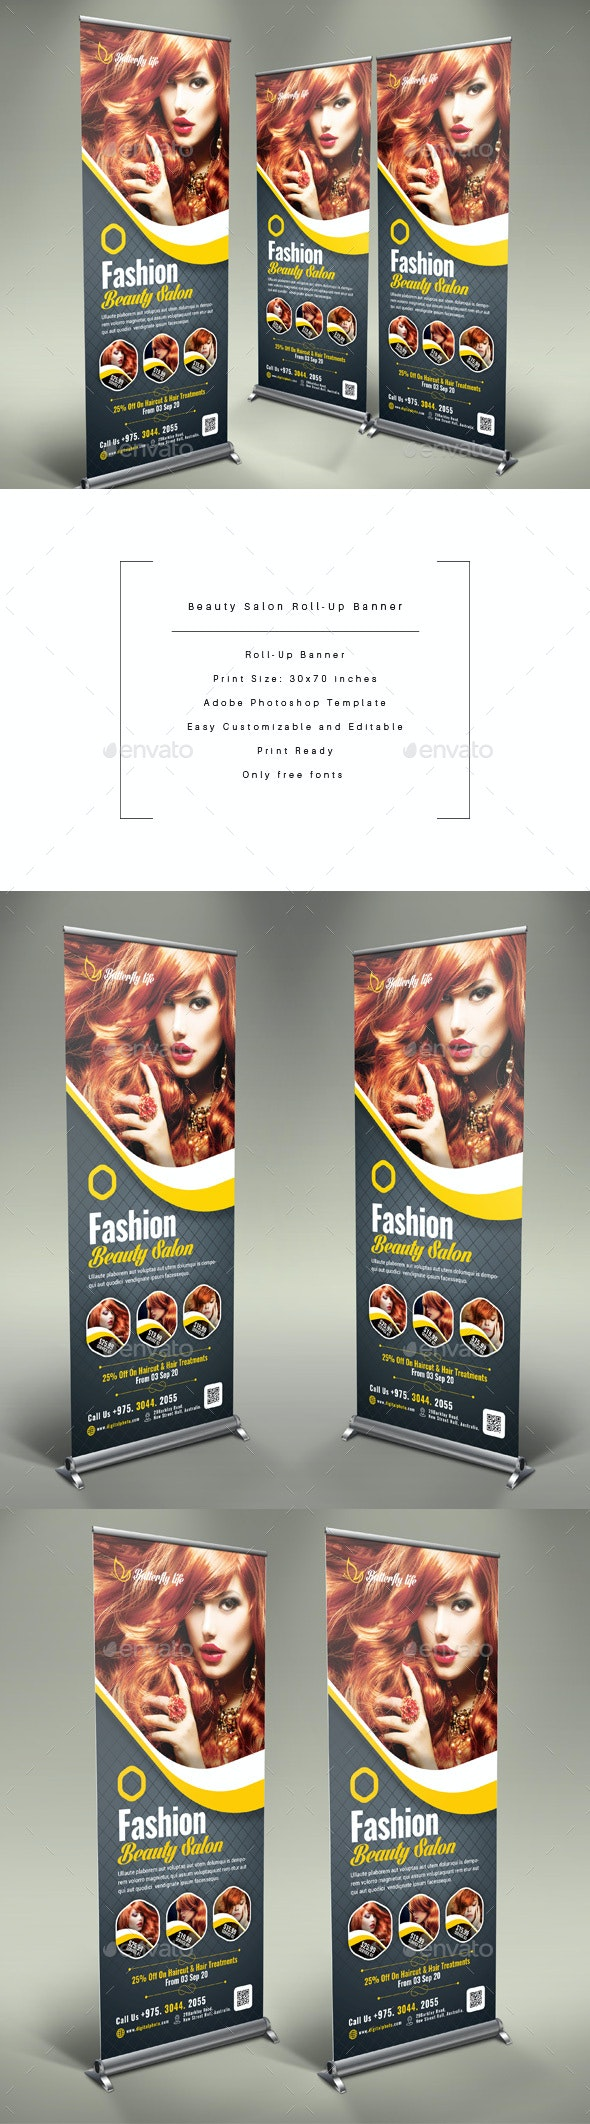 Beauty Salon Roll-Up Banner - Signage Print Templates